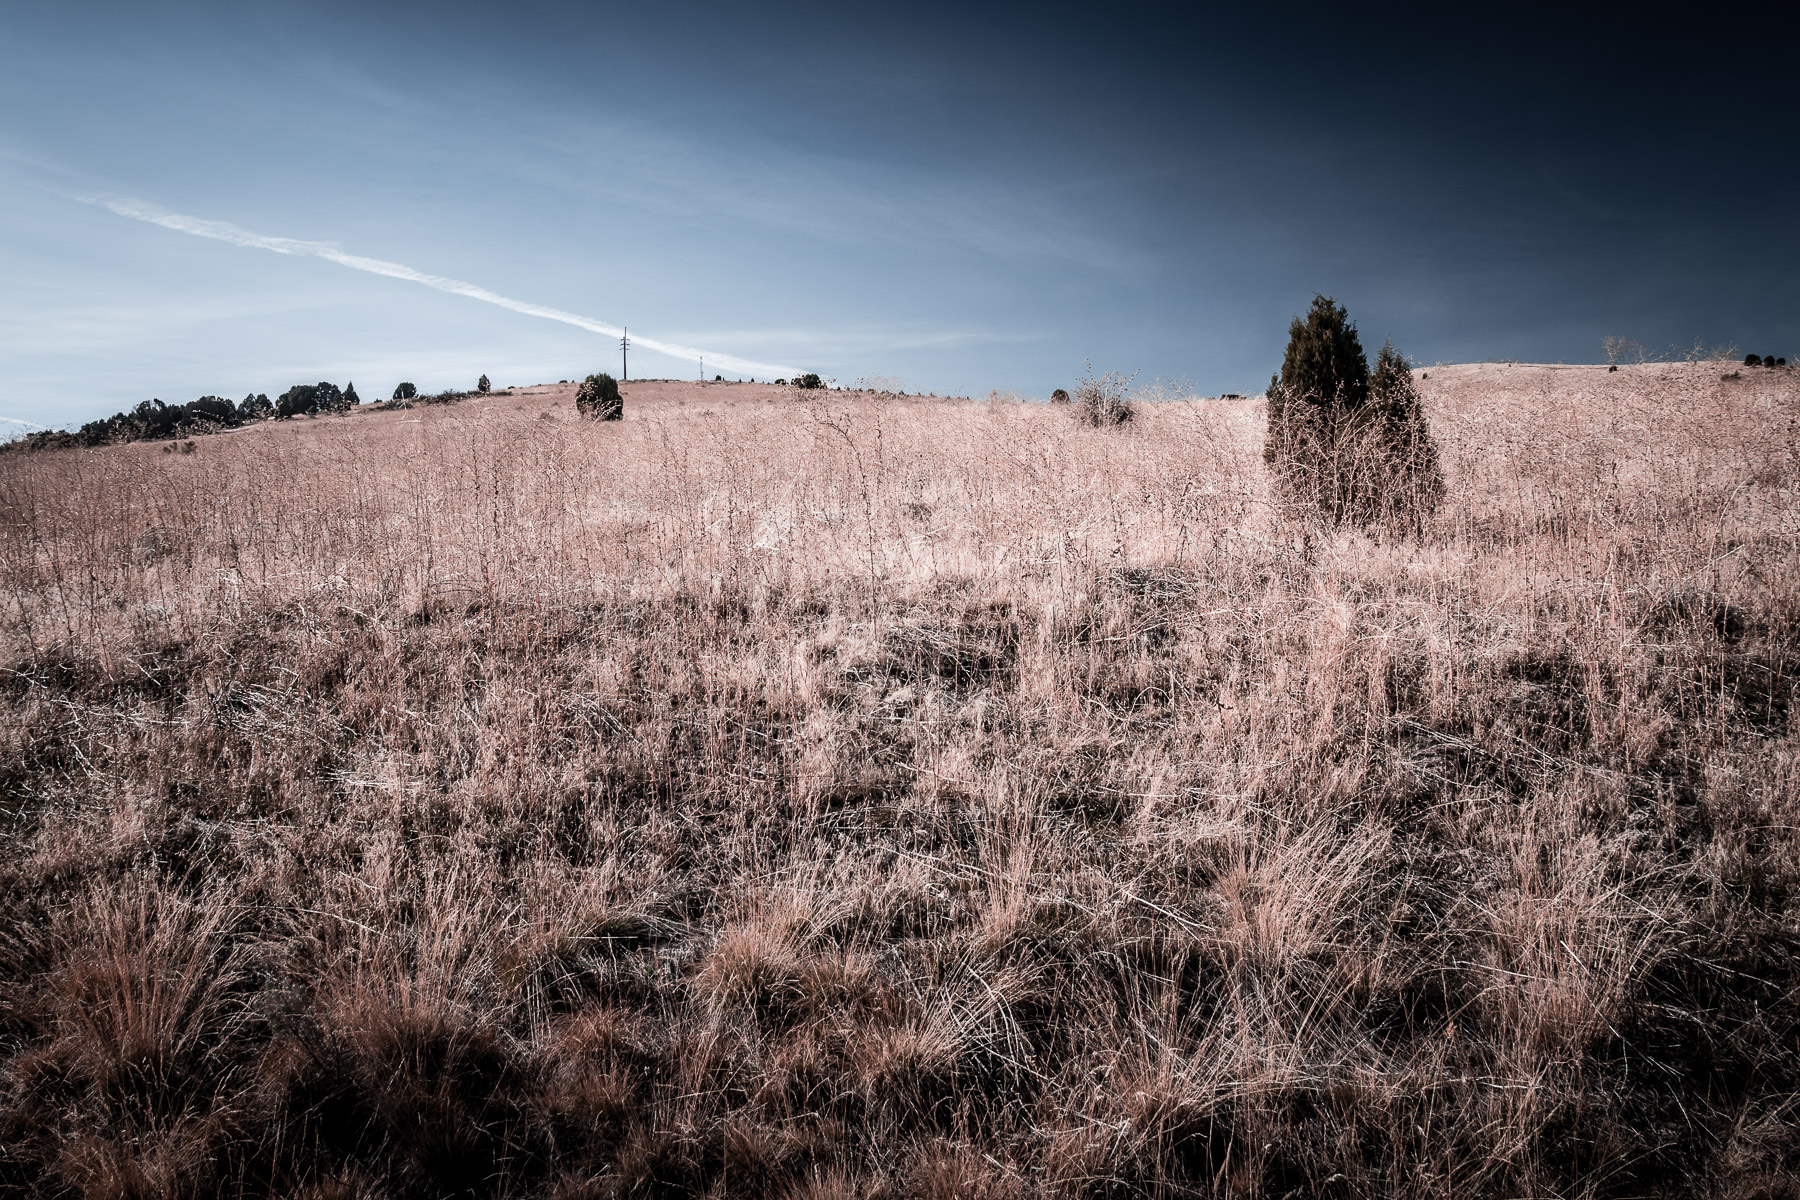 Tall grass grows on top of a hill on the outskirts of Pocatello, Idaho.